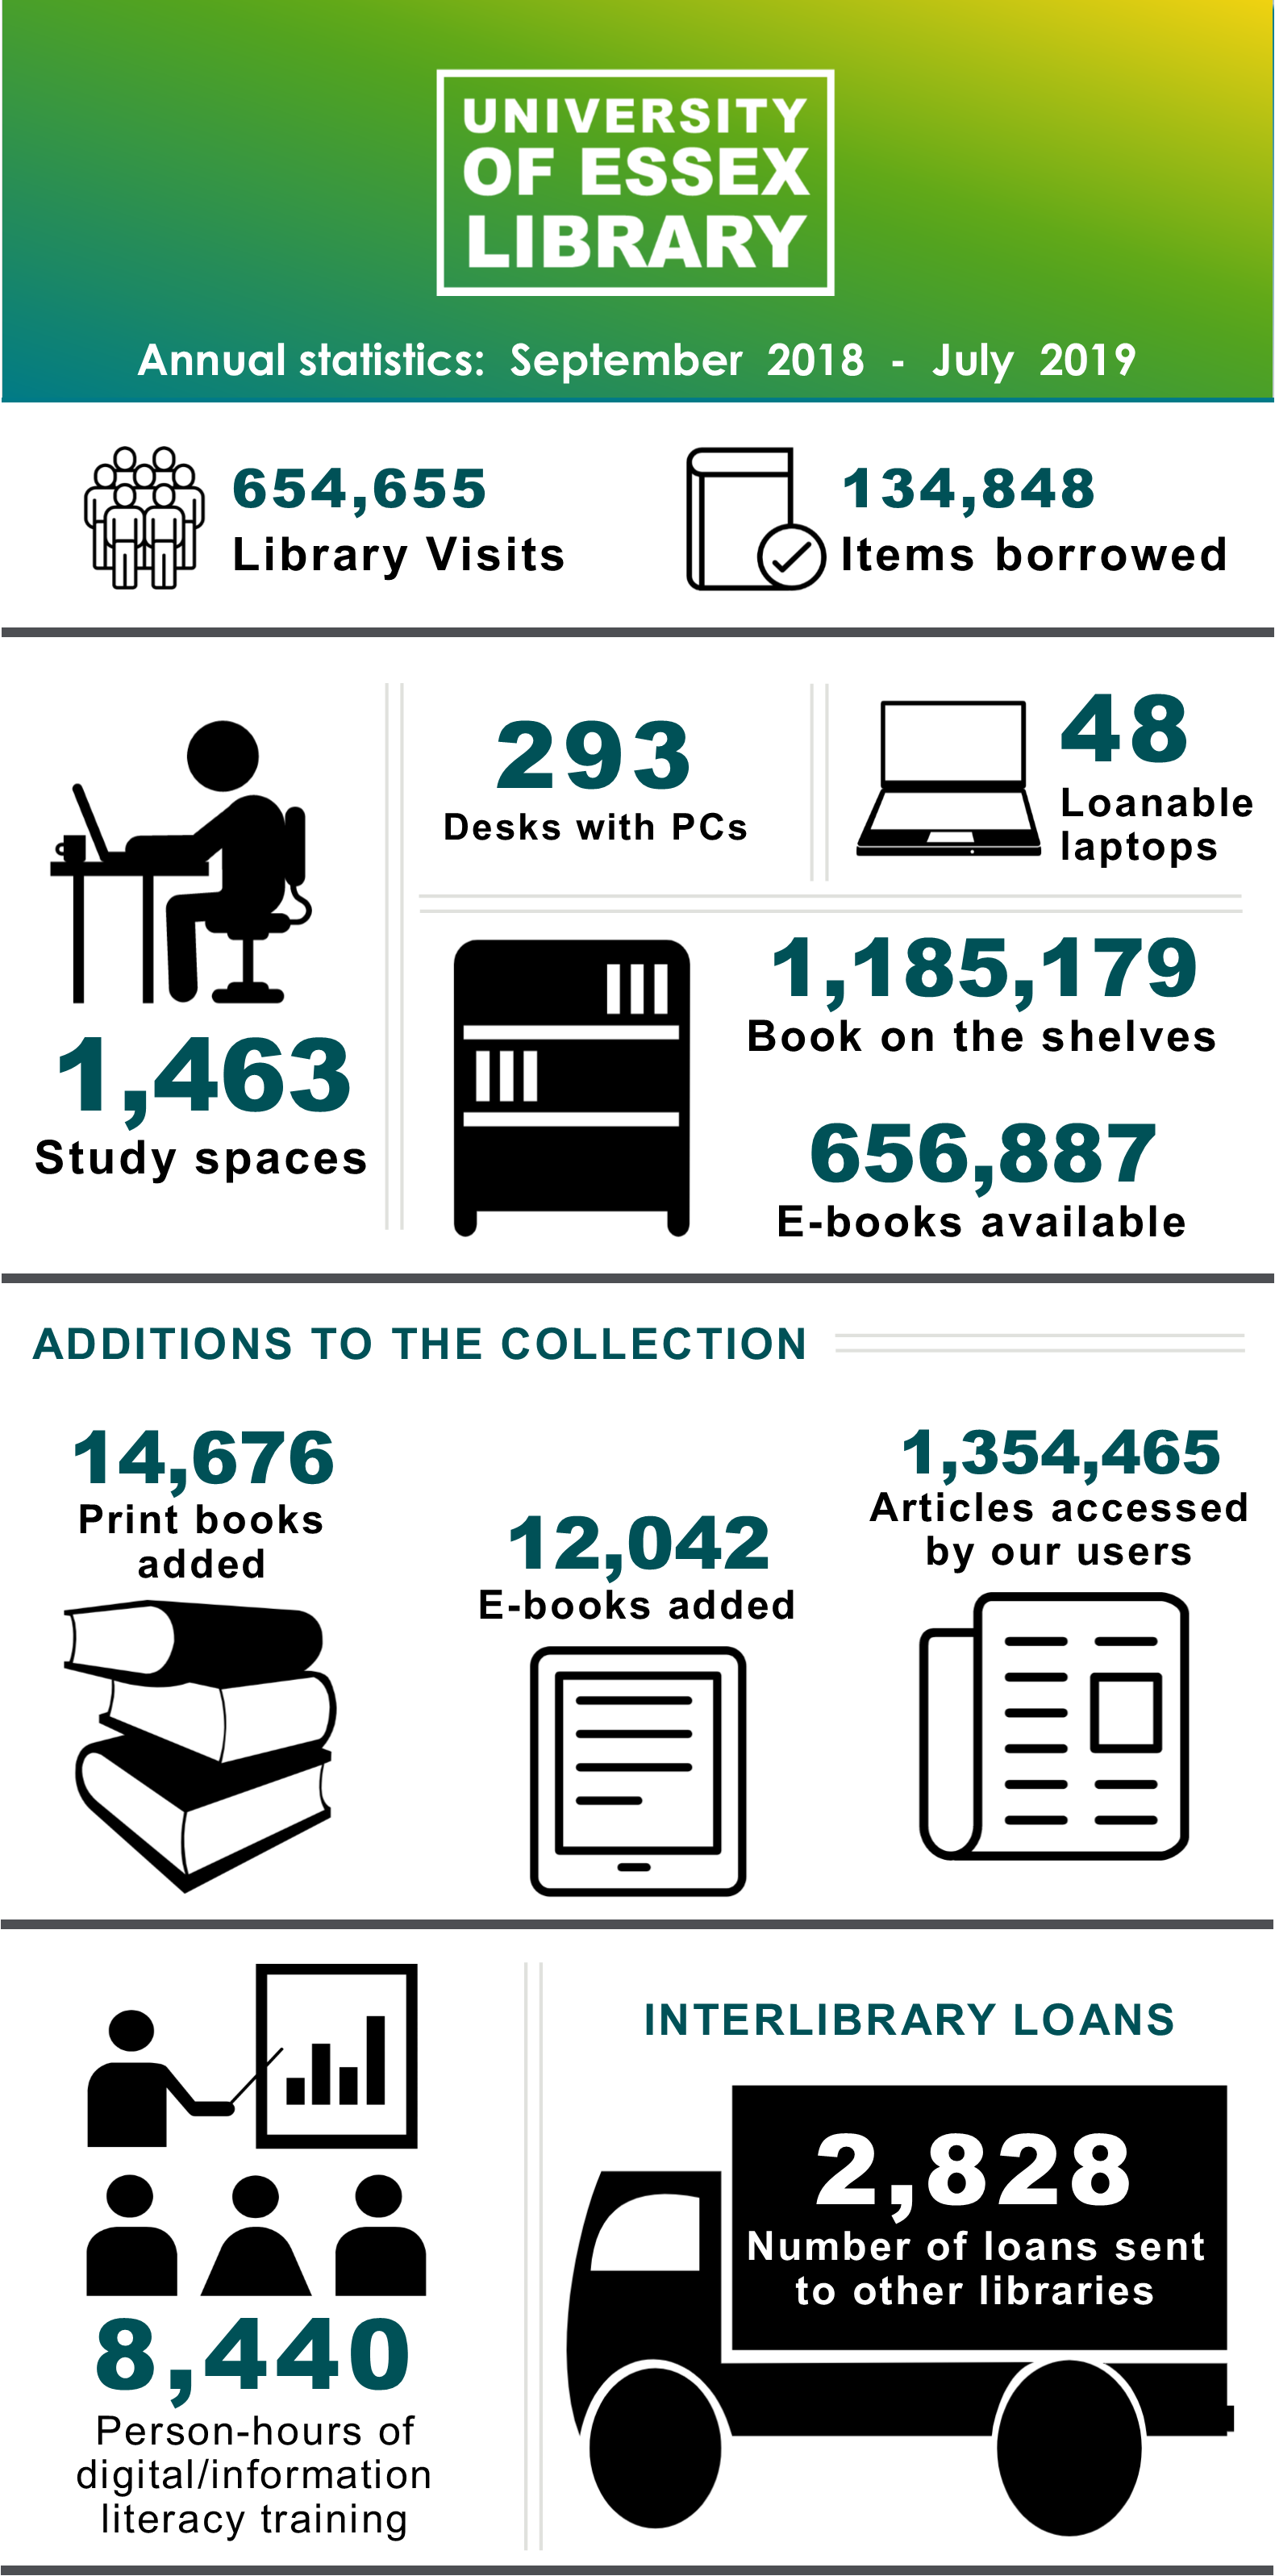 University of Essex Library Services Stats - Infographic